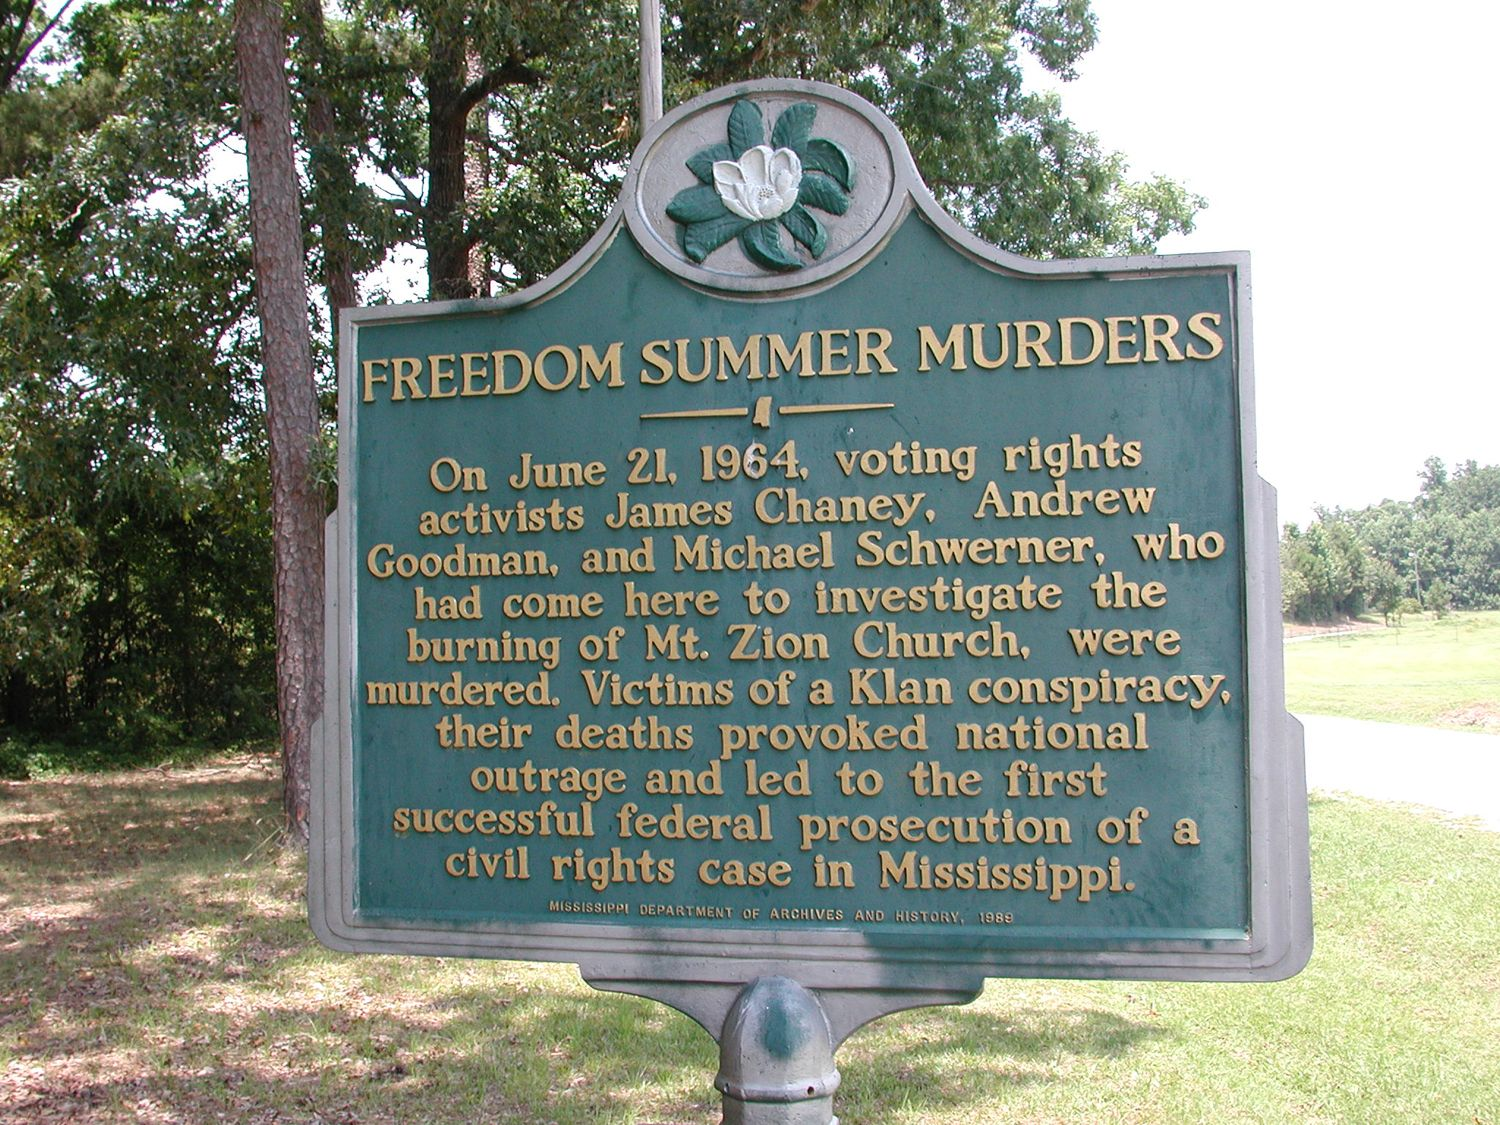 Mississippi Civil Rights Workers Murders Wikipedia The